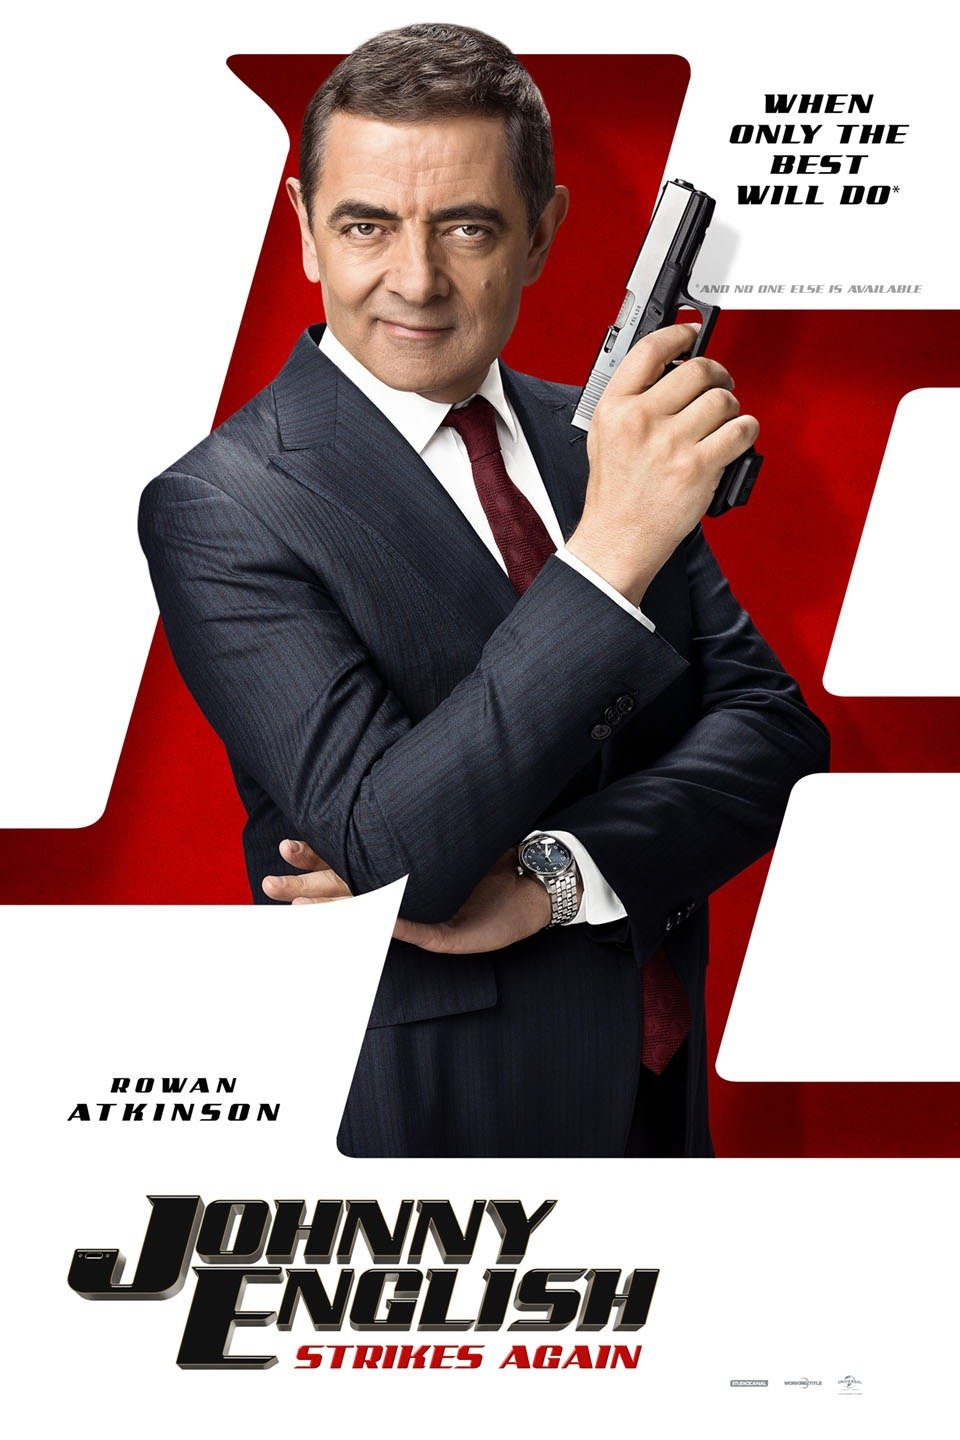 Johnny English Strikes Again 2018 Full Movie Download HD 480p And 720p High Speed Google Drive Link